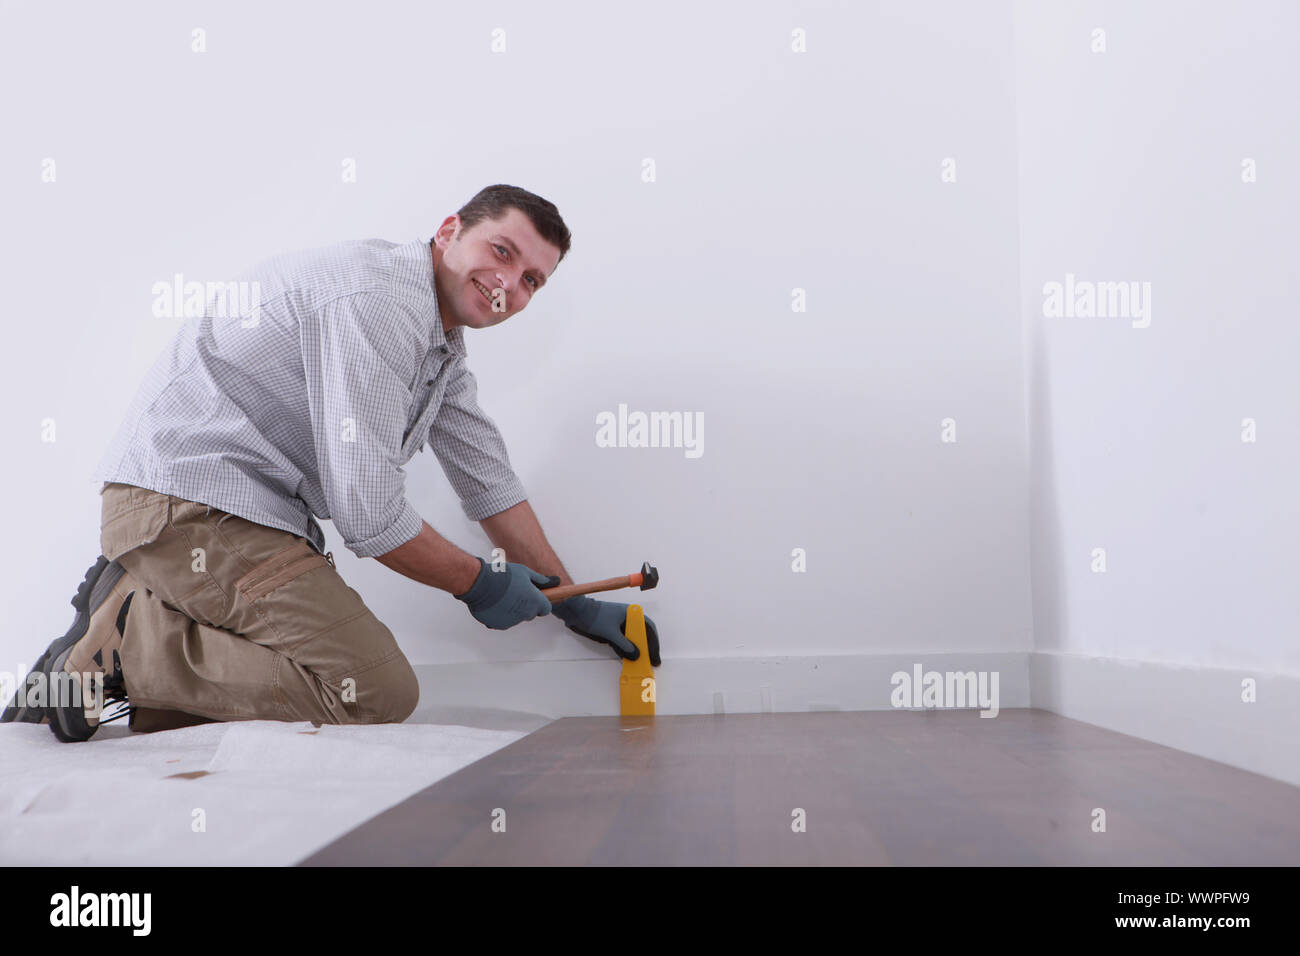 a man laying floorboards Stock Photo